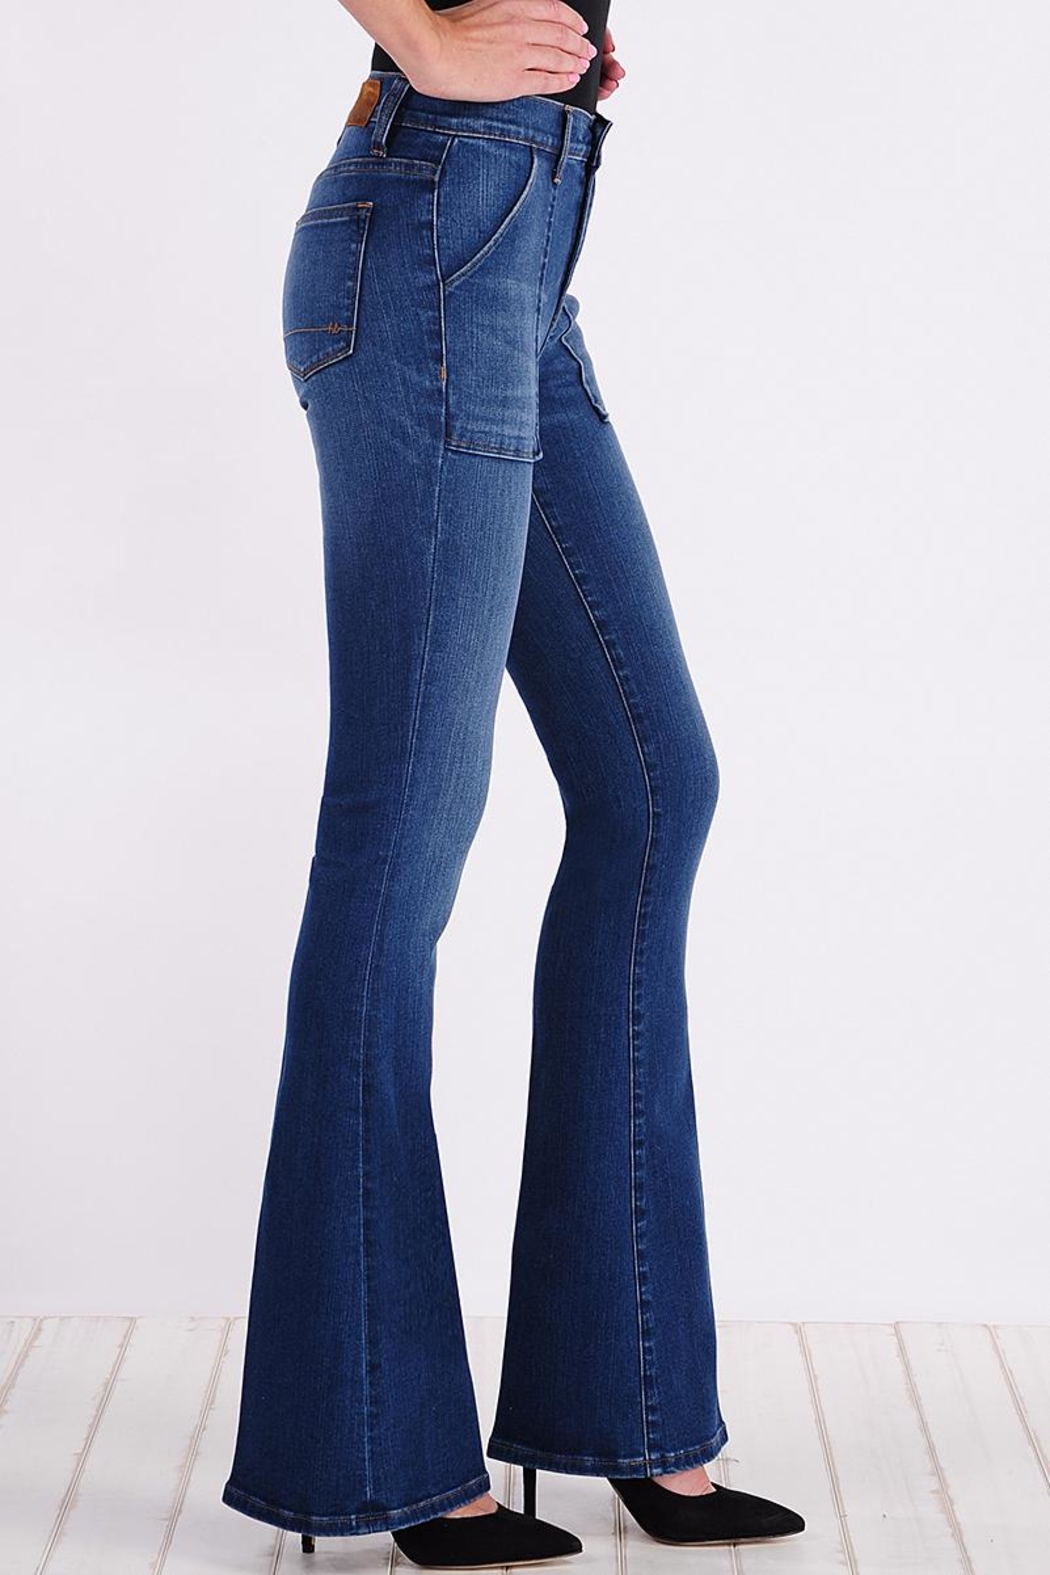 Henry & Belle High Waisted Flare Jeans - Side Cropped Image